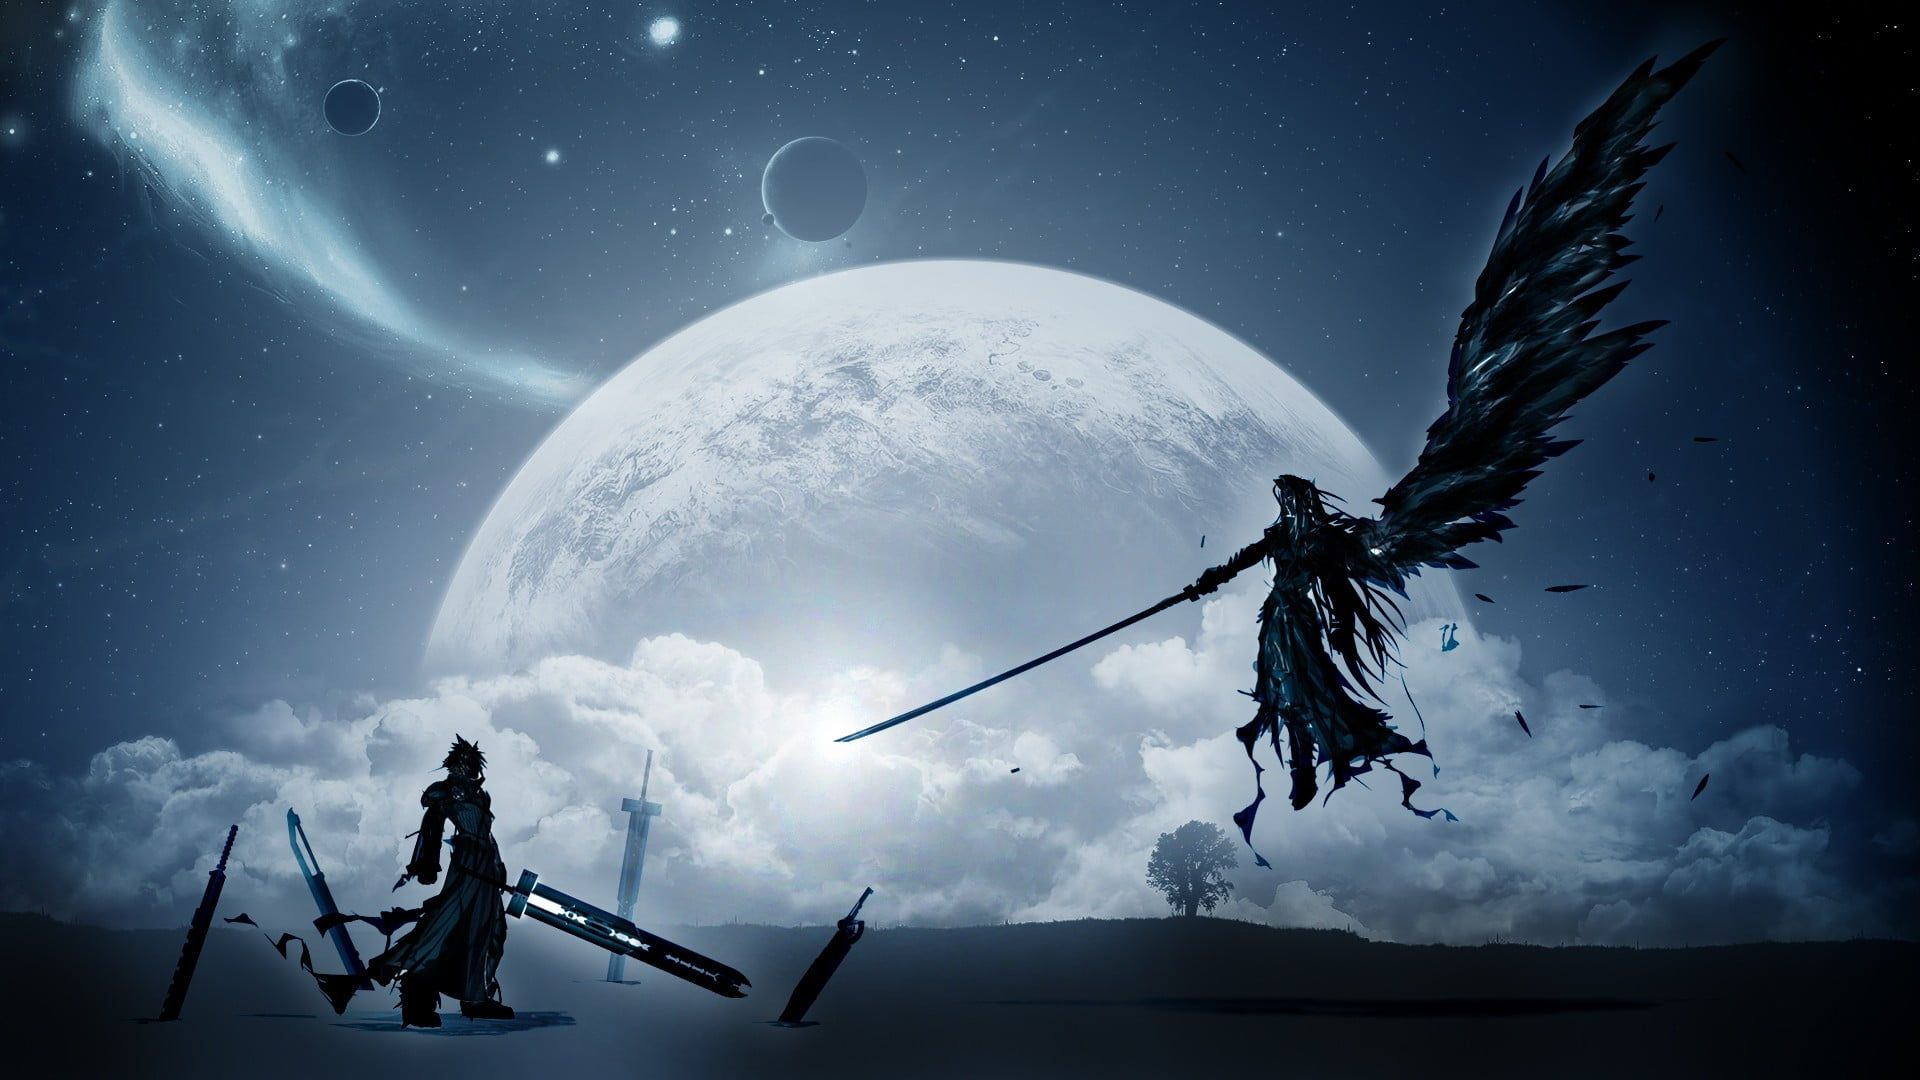 Final Fantasy 7 S Cloud Strife And Sephiroth Digital Wallpaper